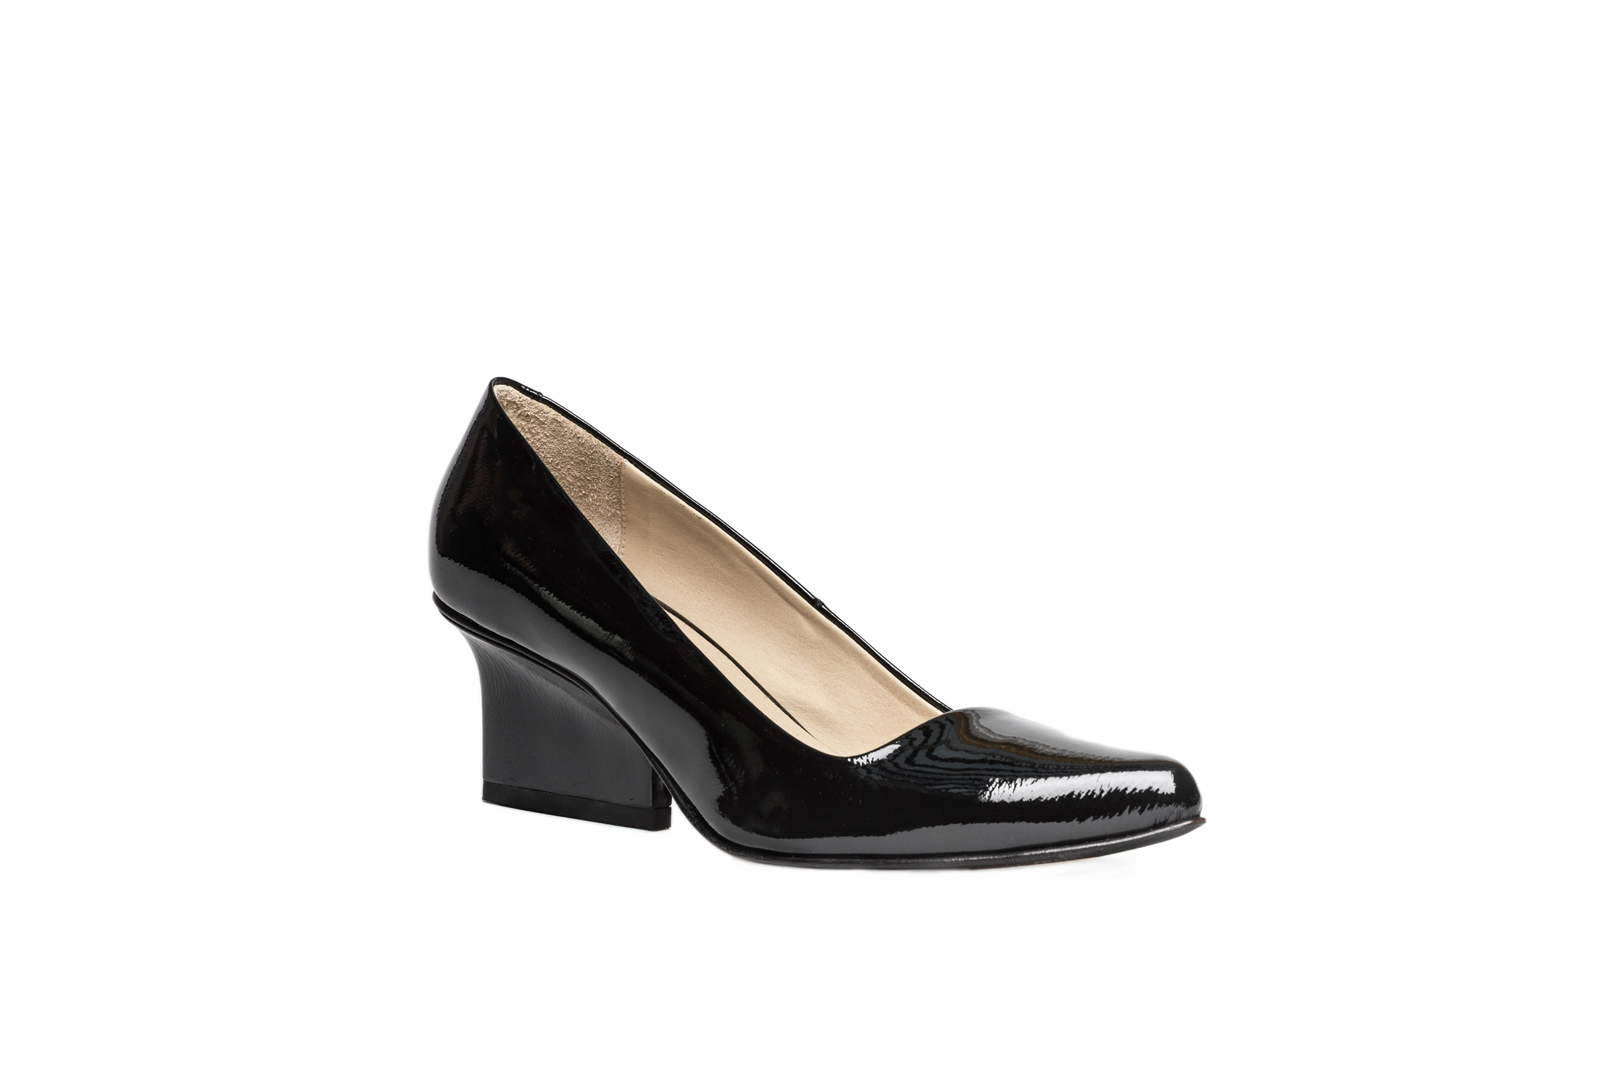 EIJK Jo pumps black patent leather angle